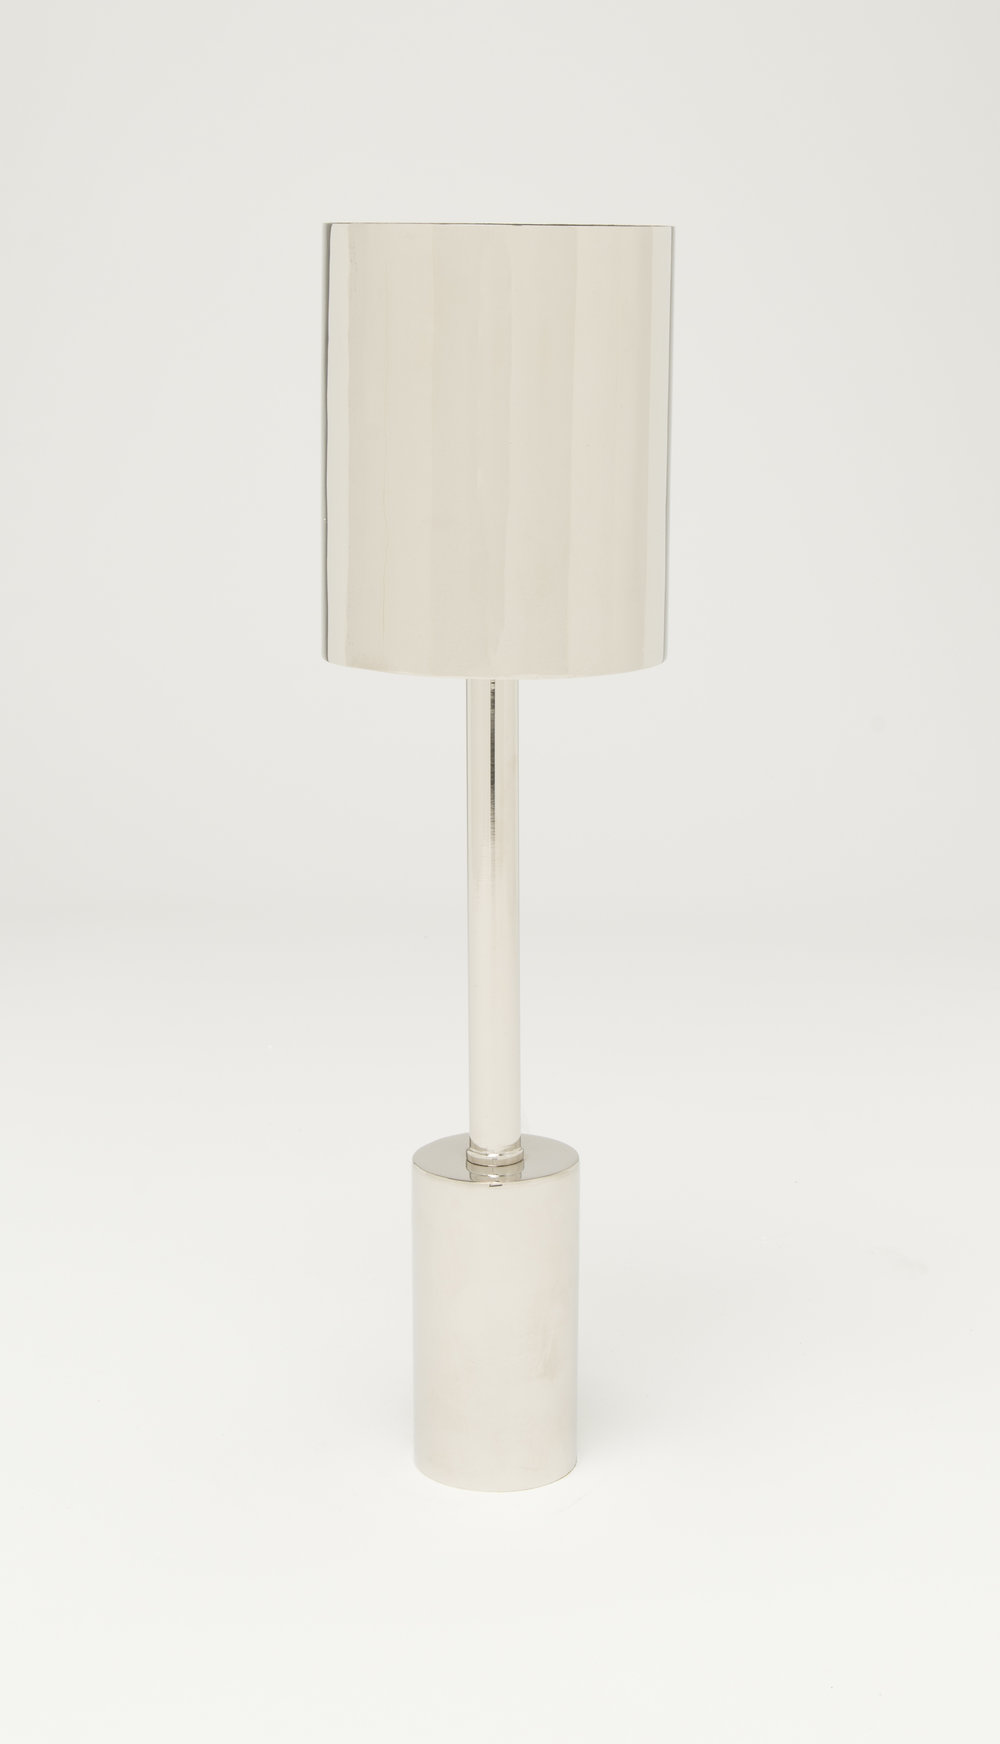 Shannon_table_lamp_white bronze.jpg